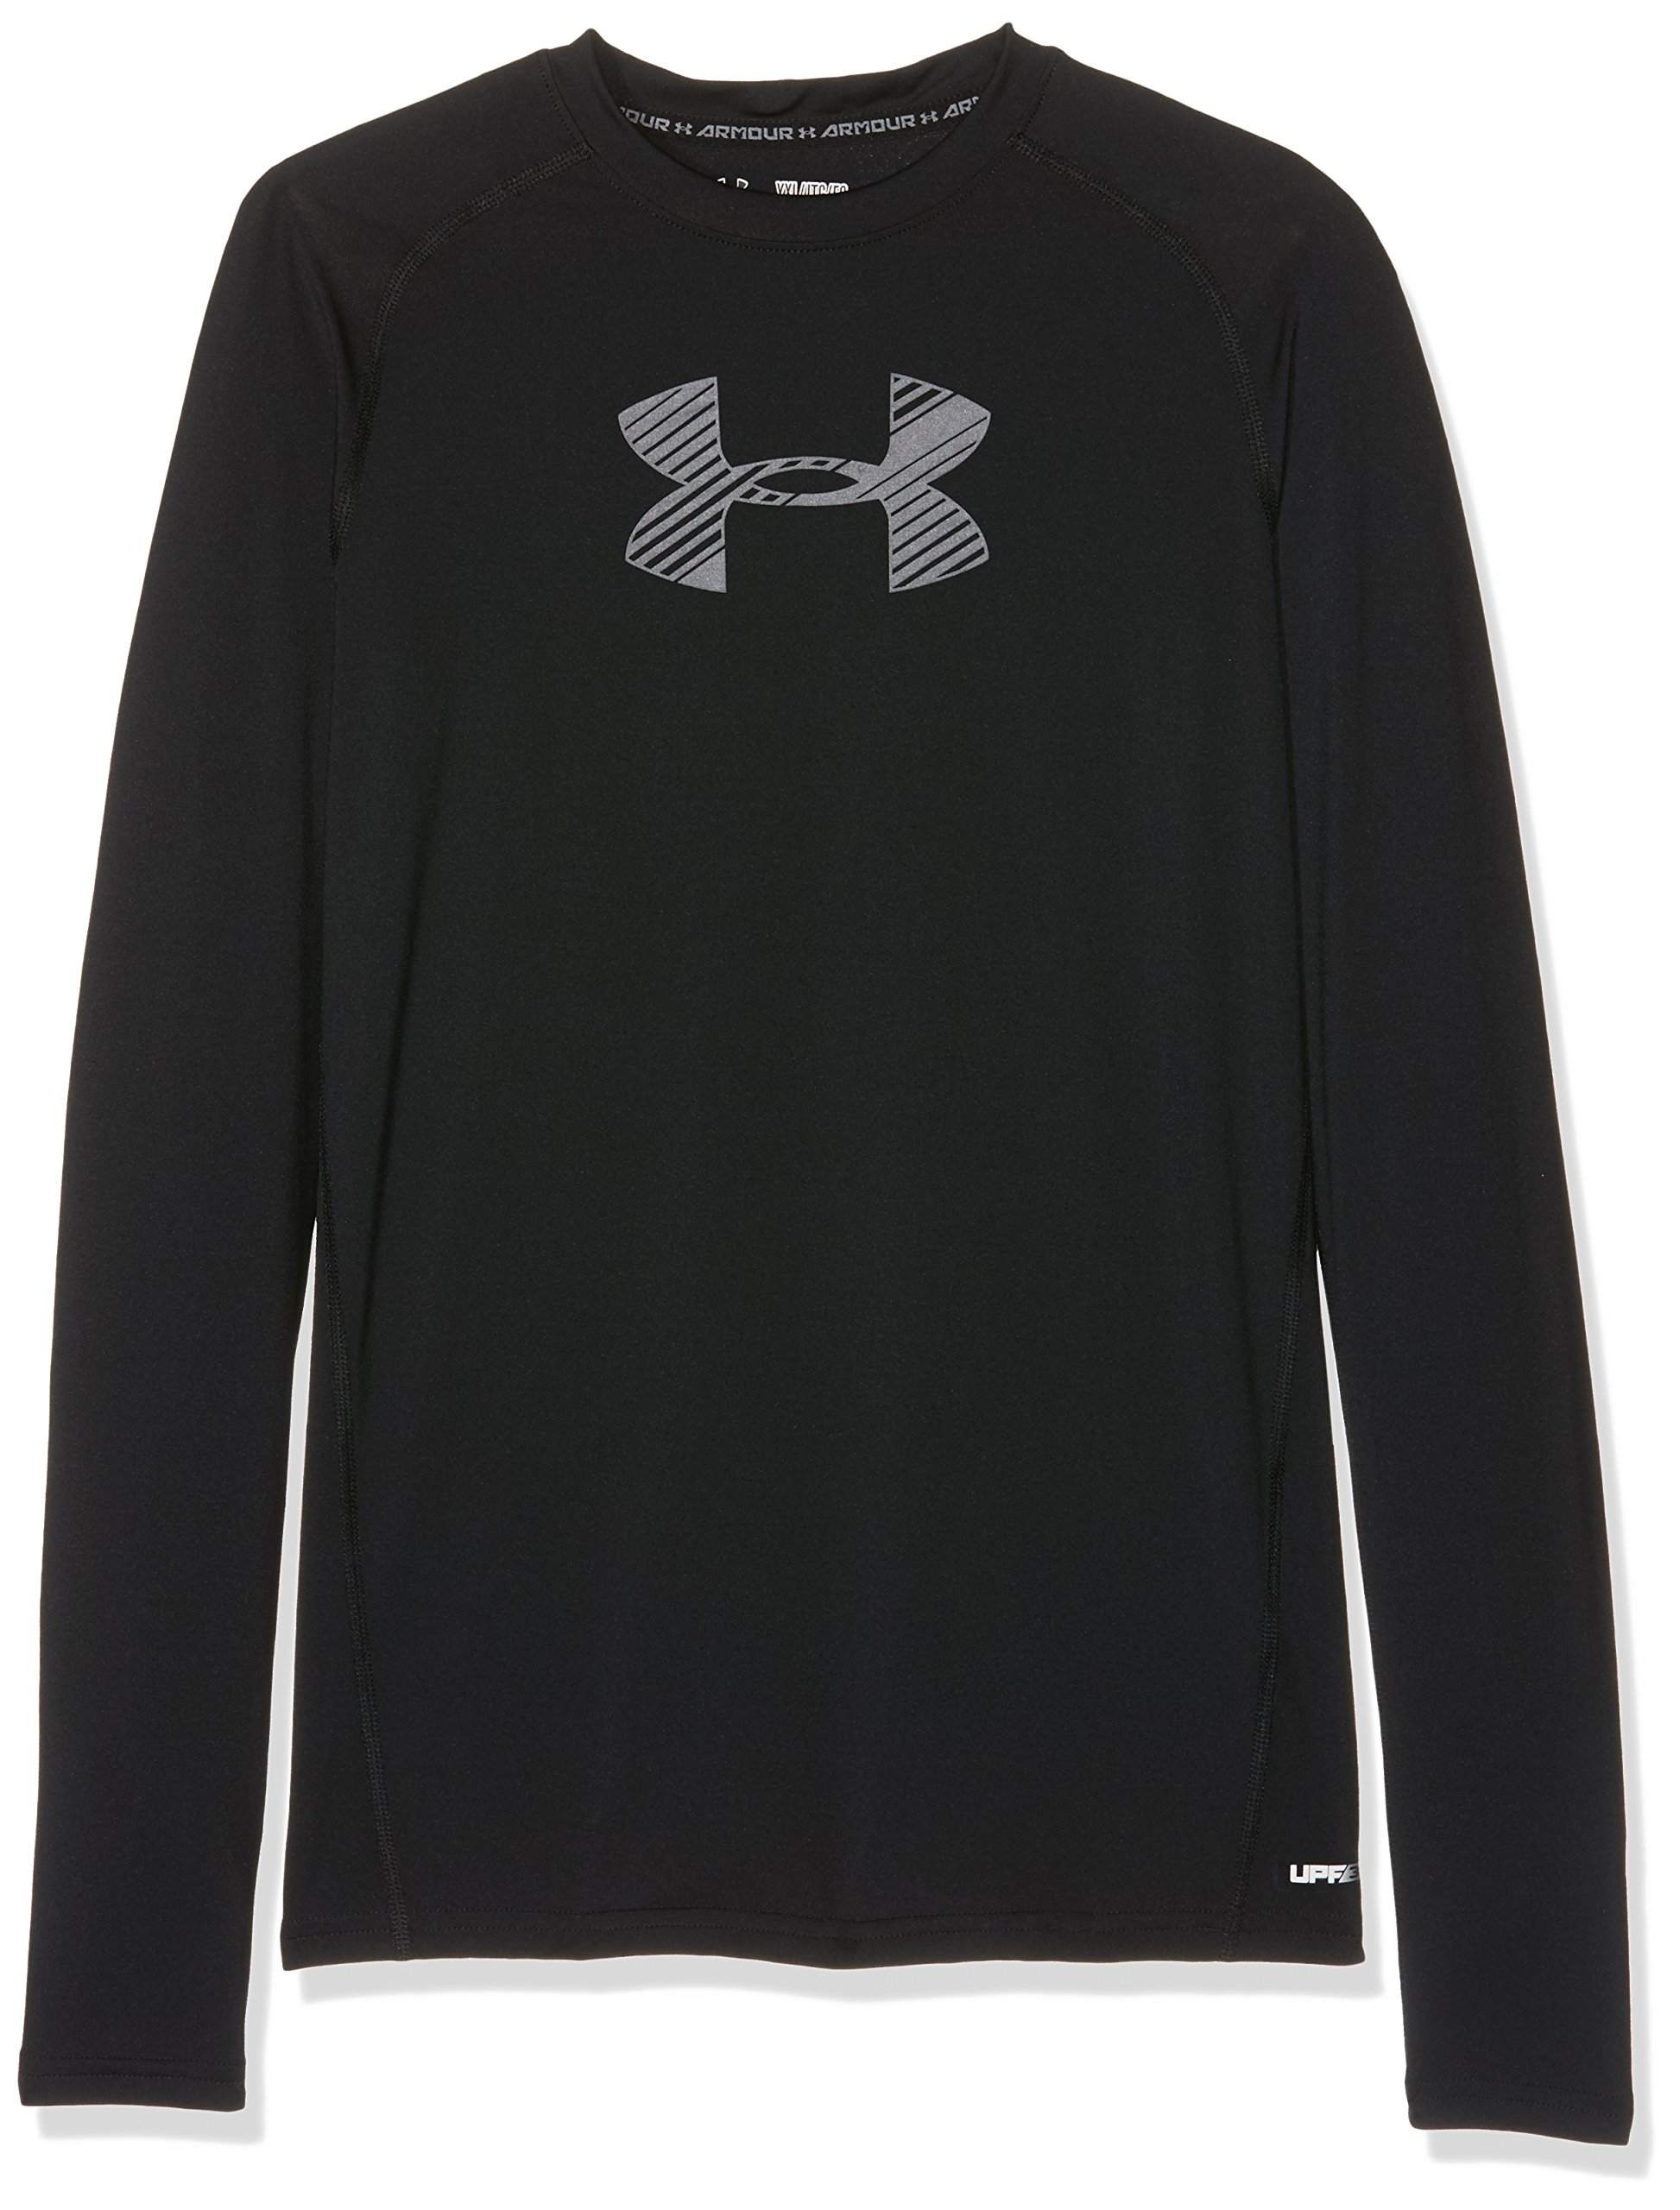 Under Armour Boys' HeatGear Armour Long Sleeve, Black /Graphite, Youth X-Small by Under Armour